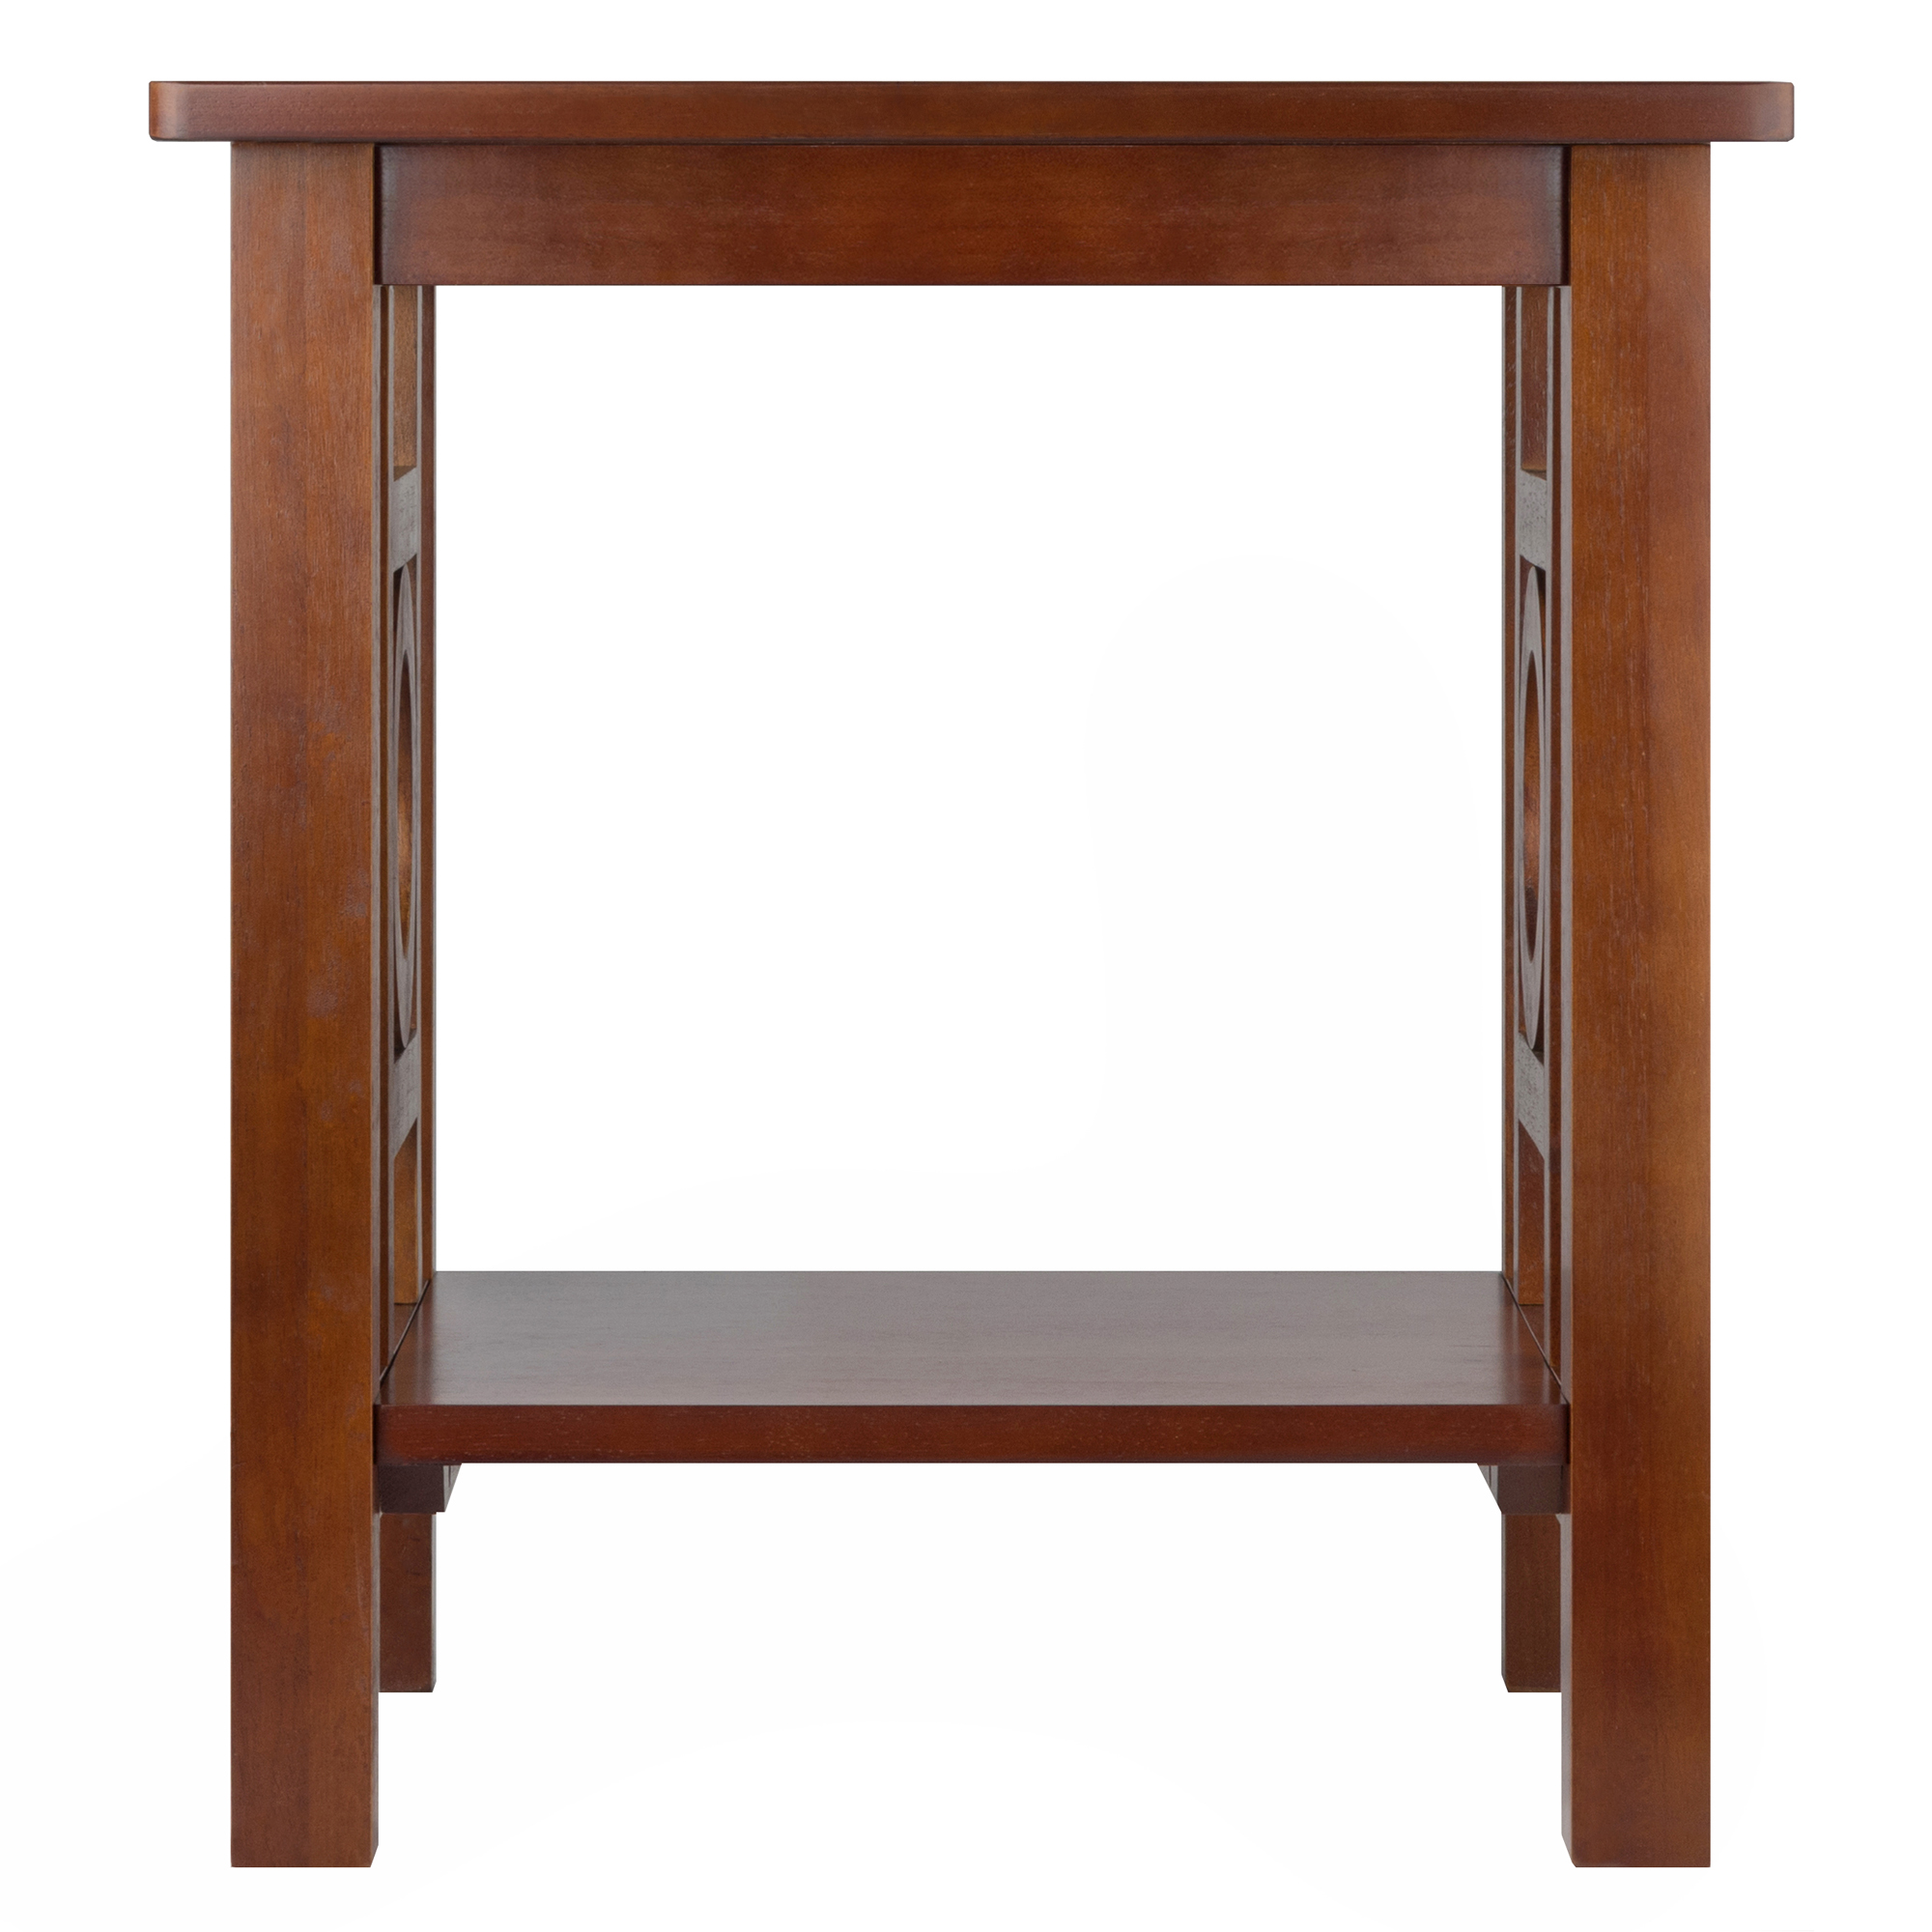 winsome wood ollie accent end table walnut finish home office furniture shelf dark oak side fine linens scandinavian american made black coffee with glass mirage mirrored vanity